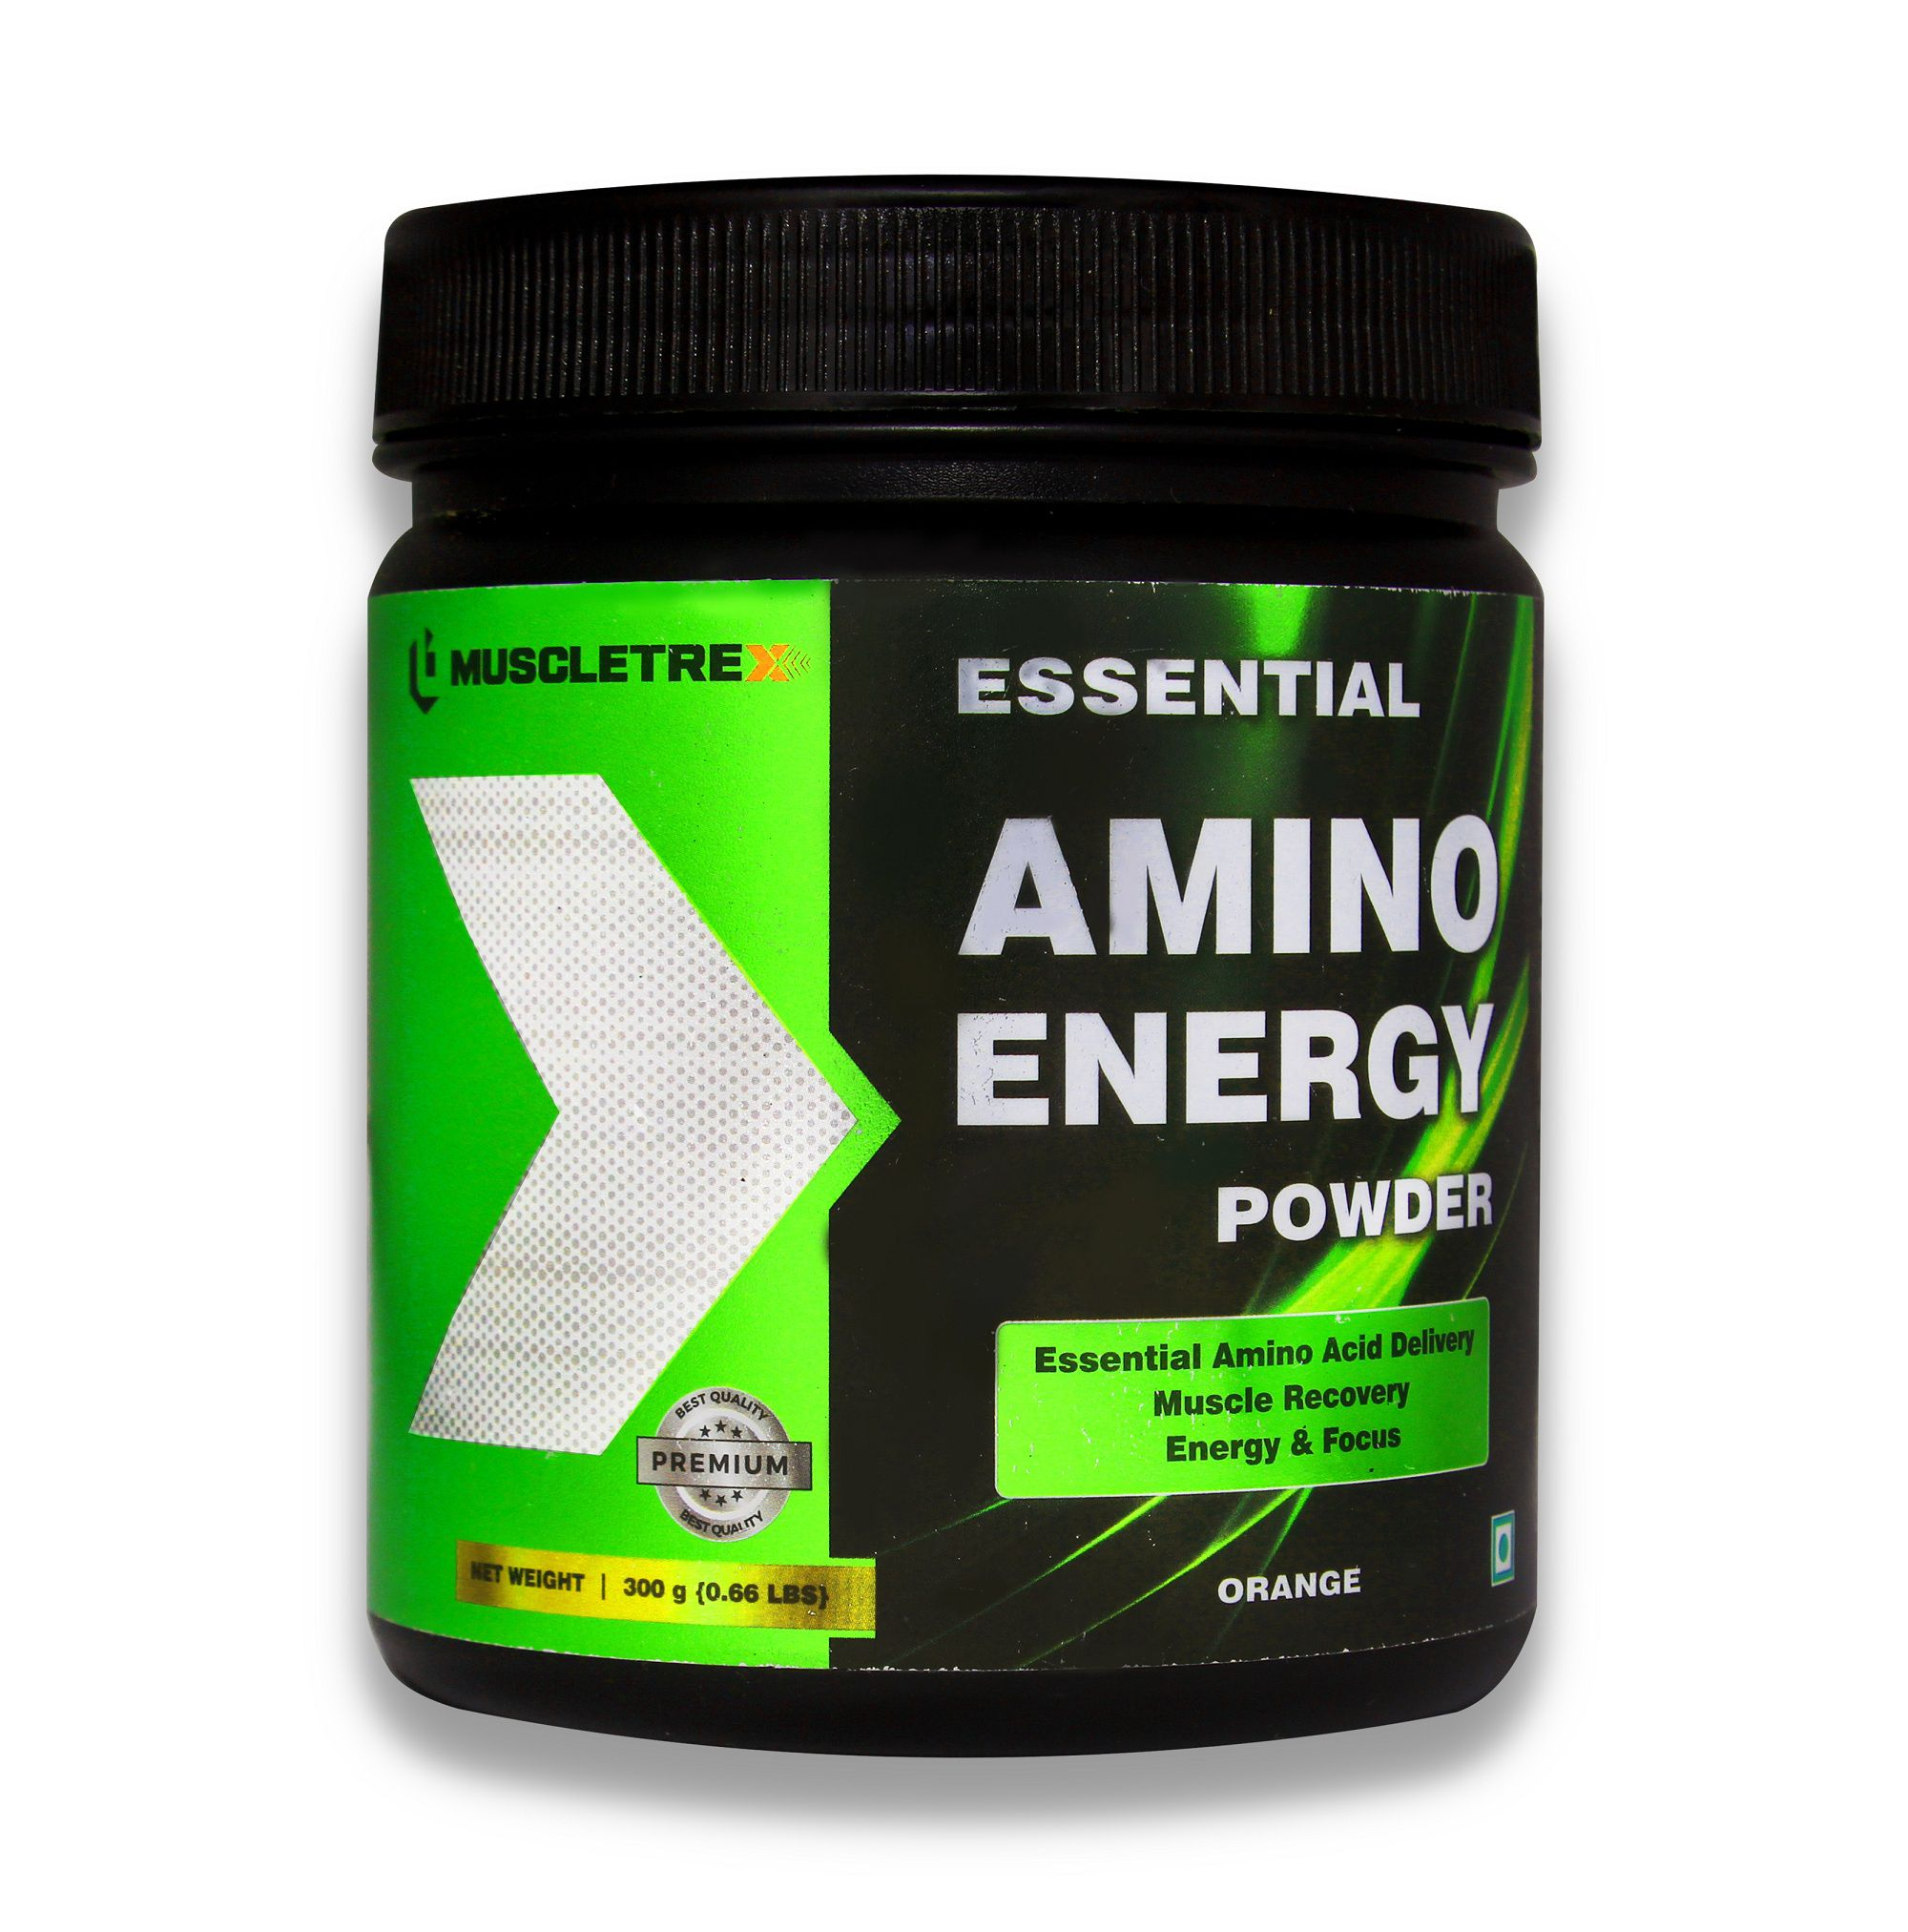 Muscletrex Essential Amino Energy Powder, Orange Energy Drink for Adult 300 gm